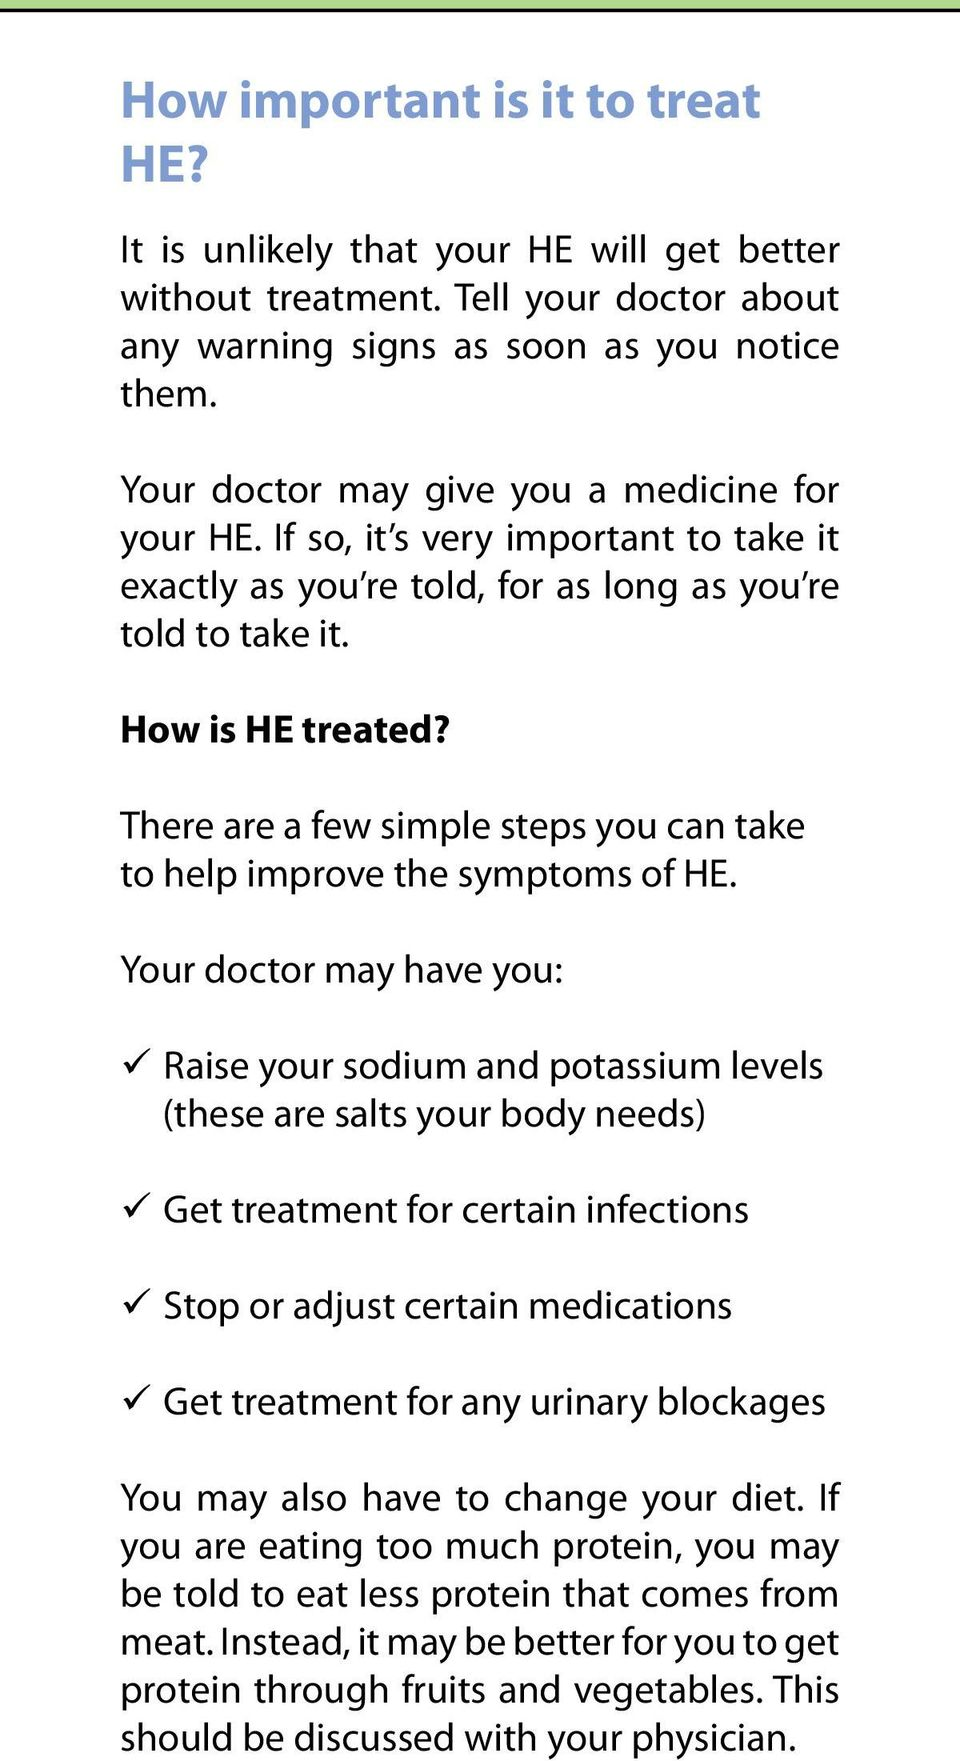 There are a few simple steps you can take to help improve the symptoms of HE.